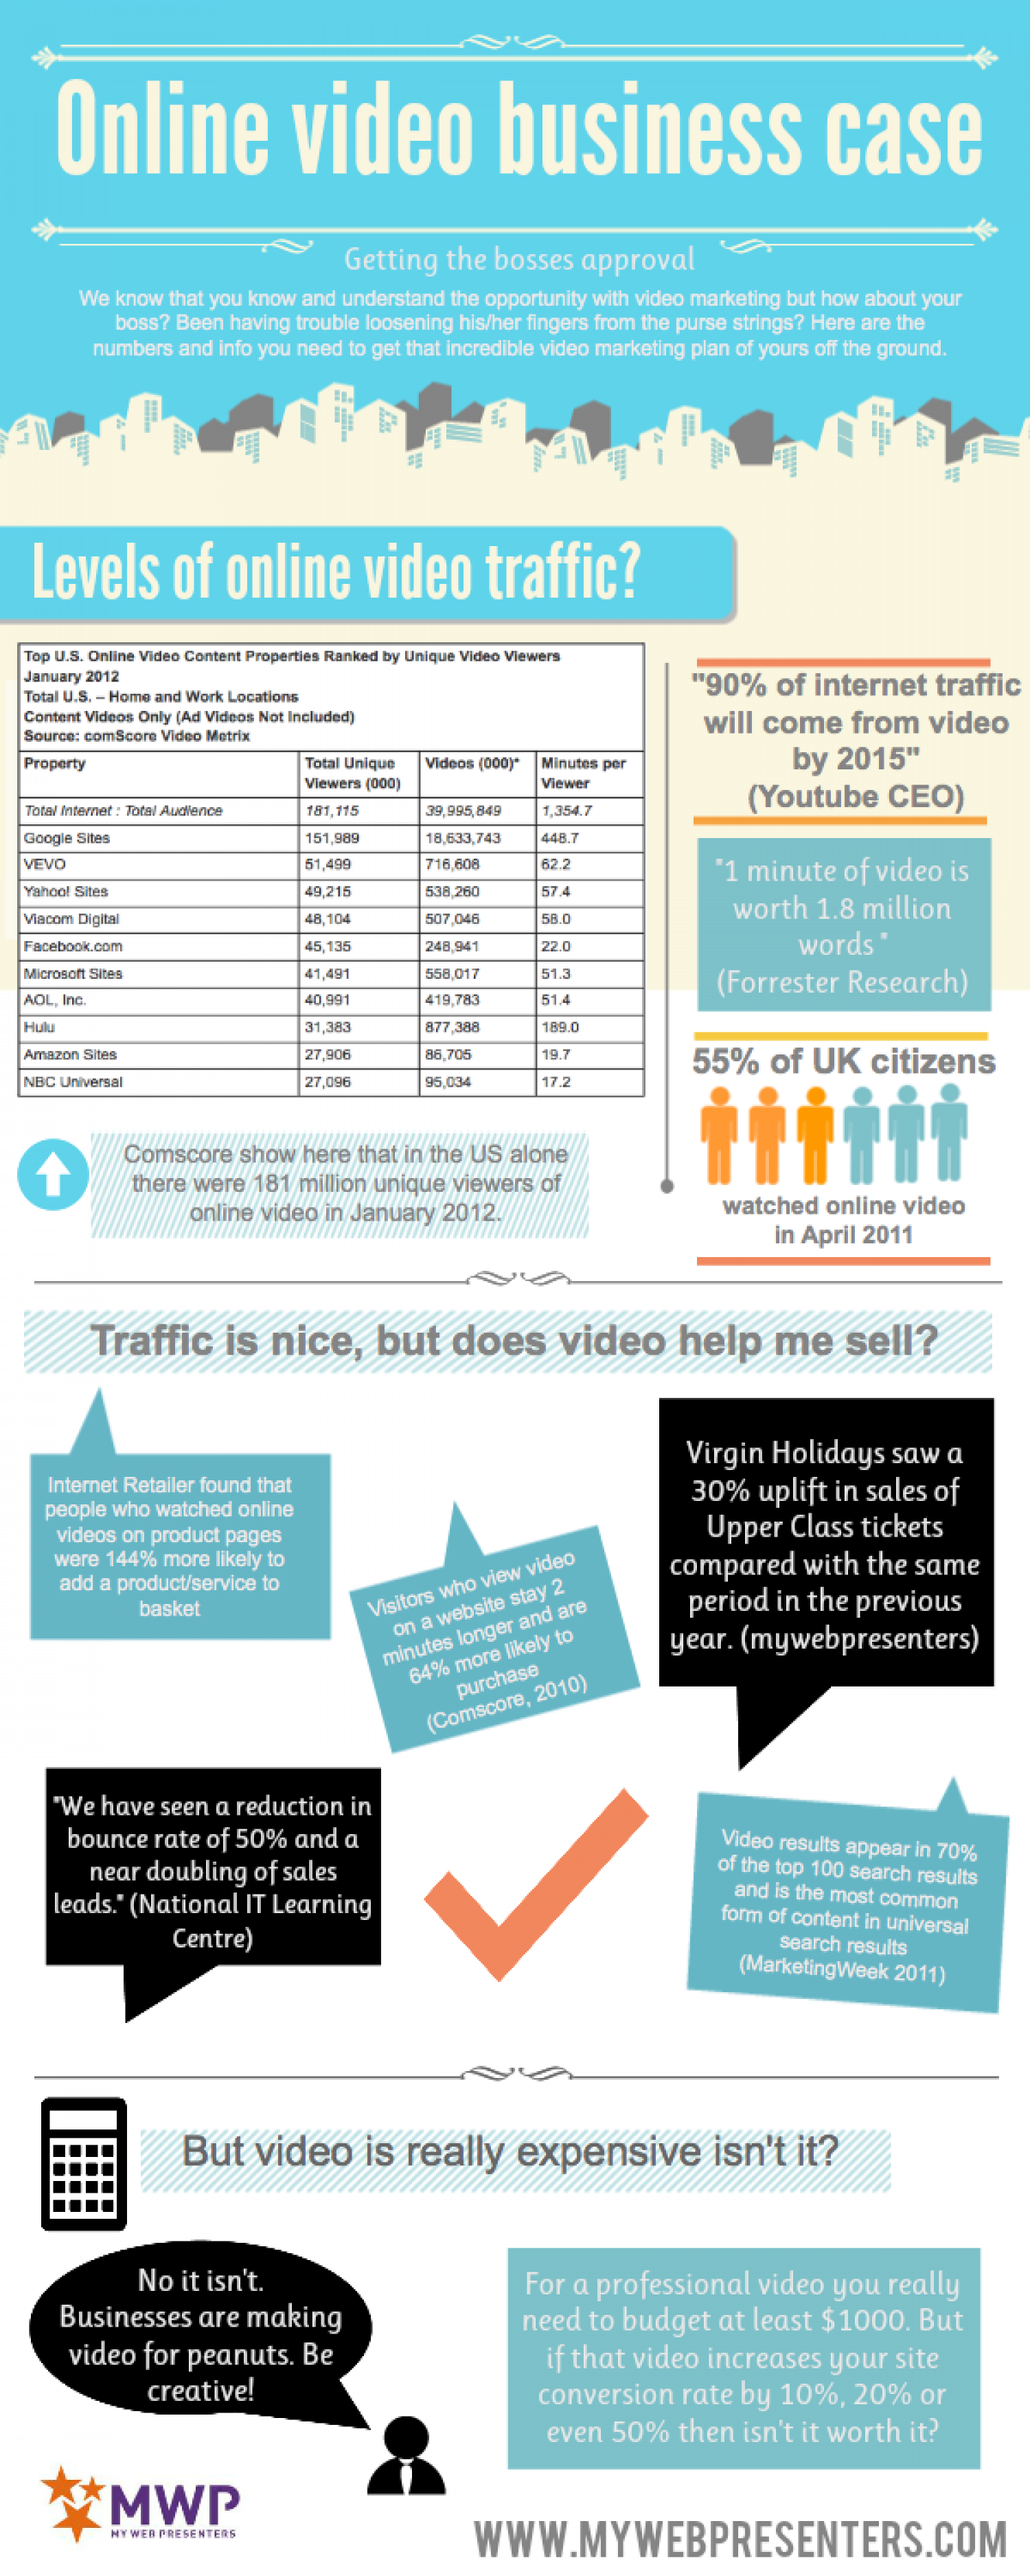 Online Video Business Case Infographic Infographic